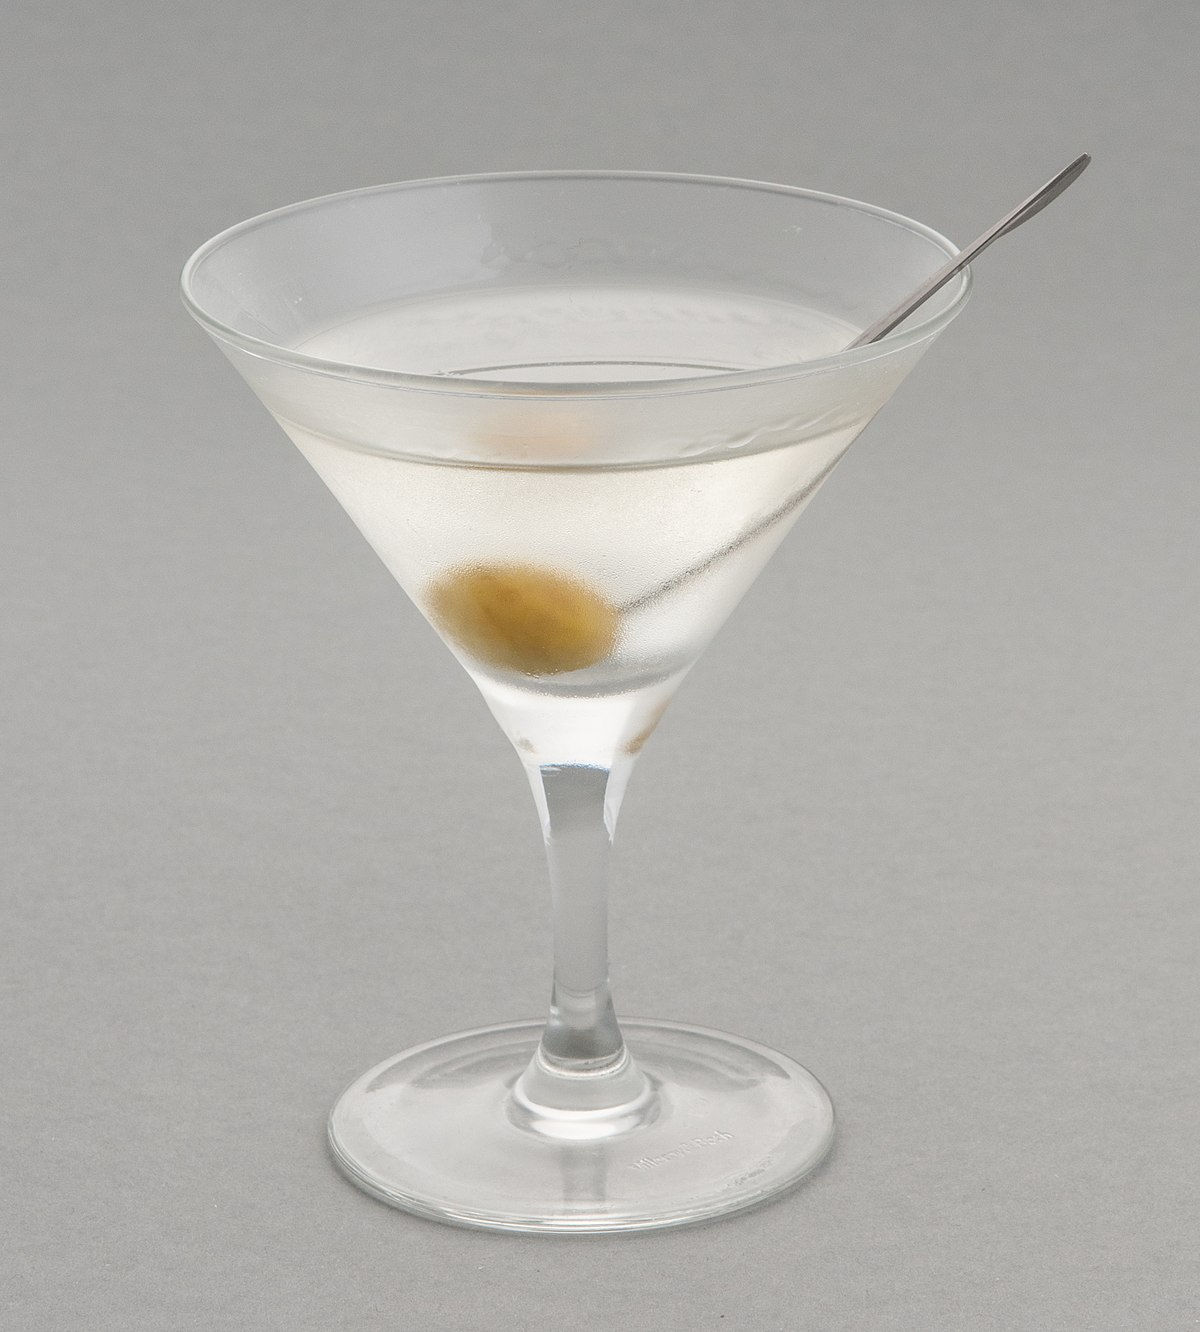 Cocktail - Wikipedia